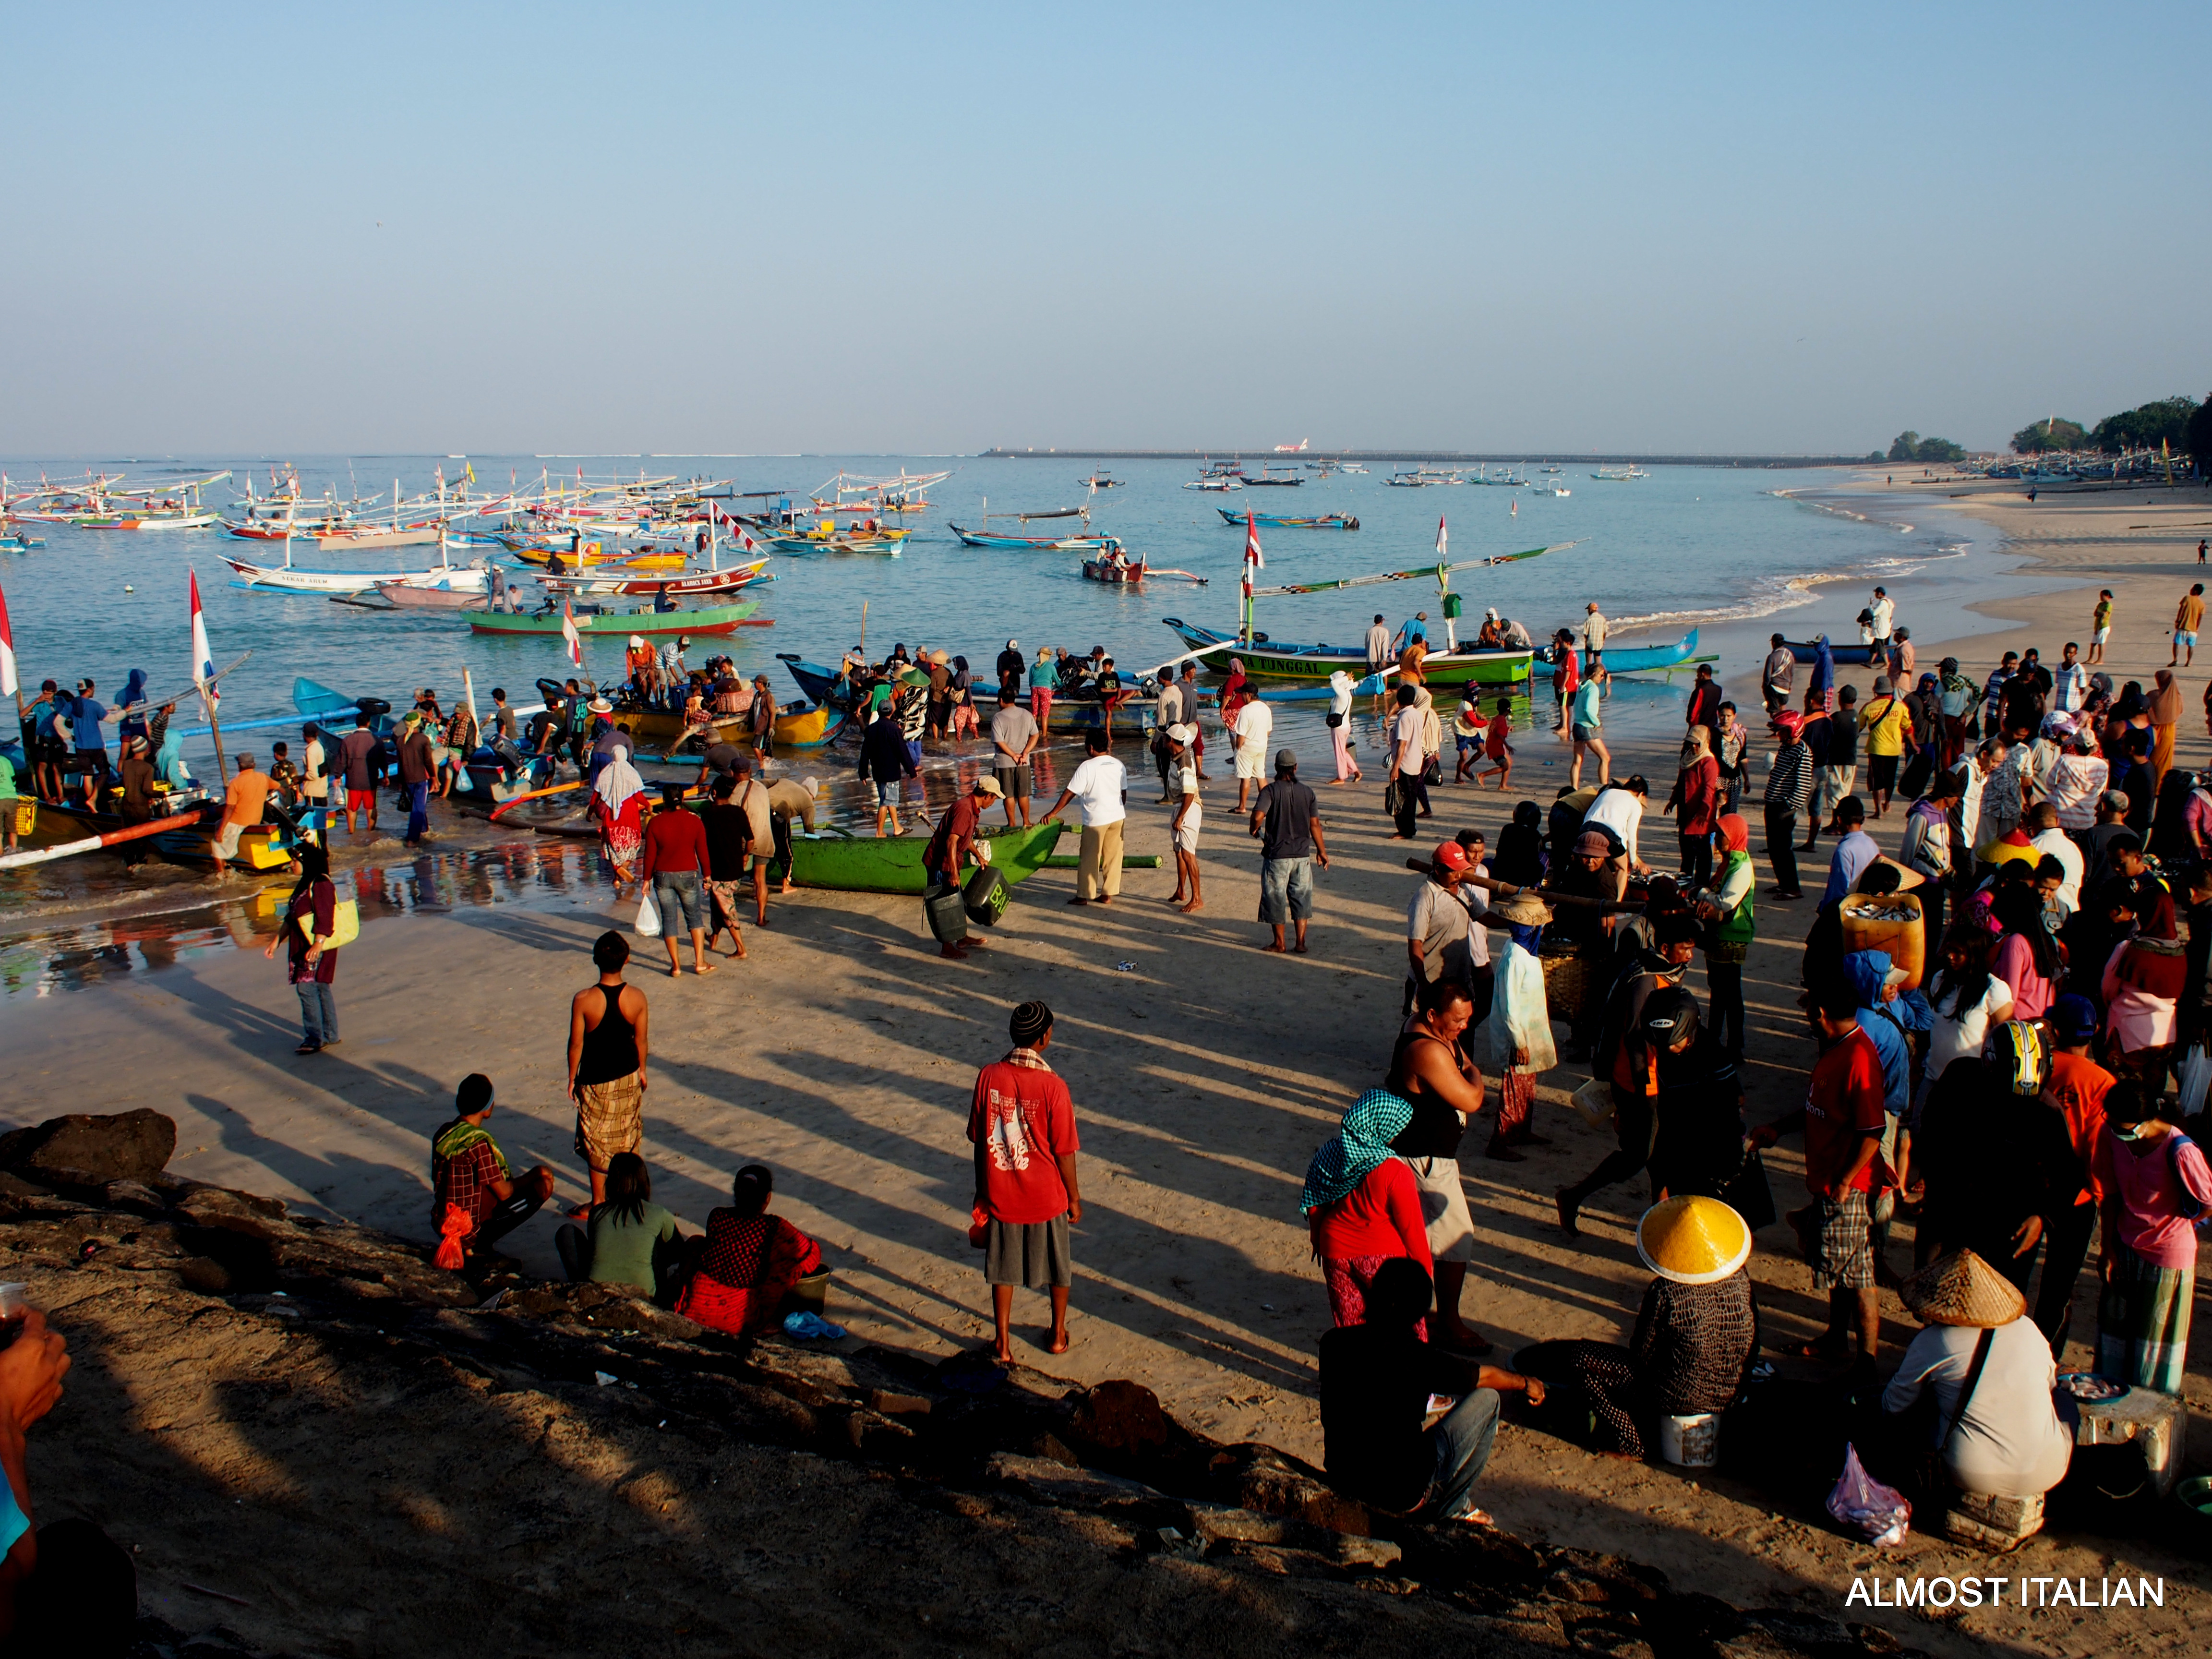 Crowds gather at the Jimbaran Fish Market.